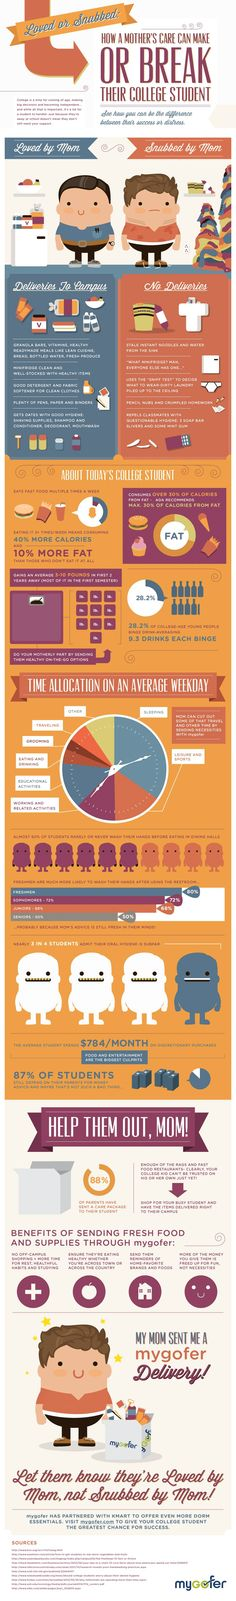 #INFOGRAPHIC: HOW A MOTHER'S CARE CAN MAKE OR BREAK THEIR COLLEGE STUDENT